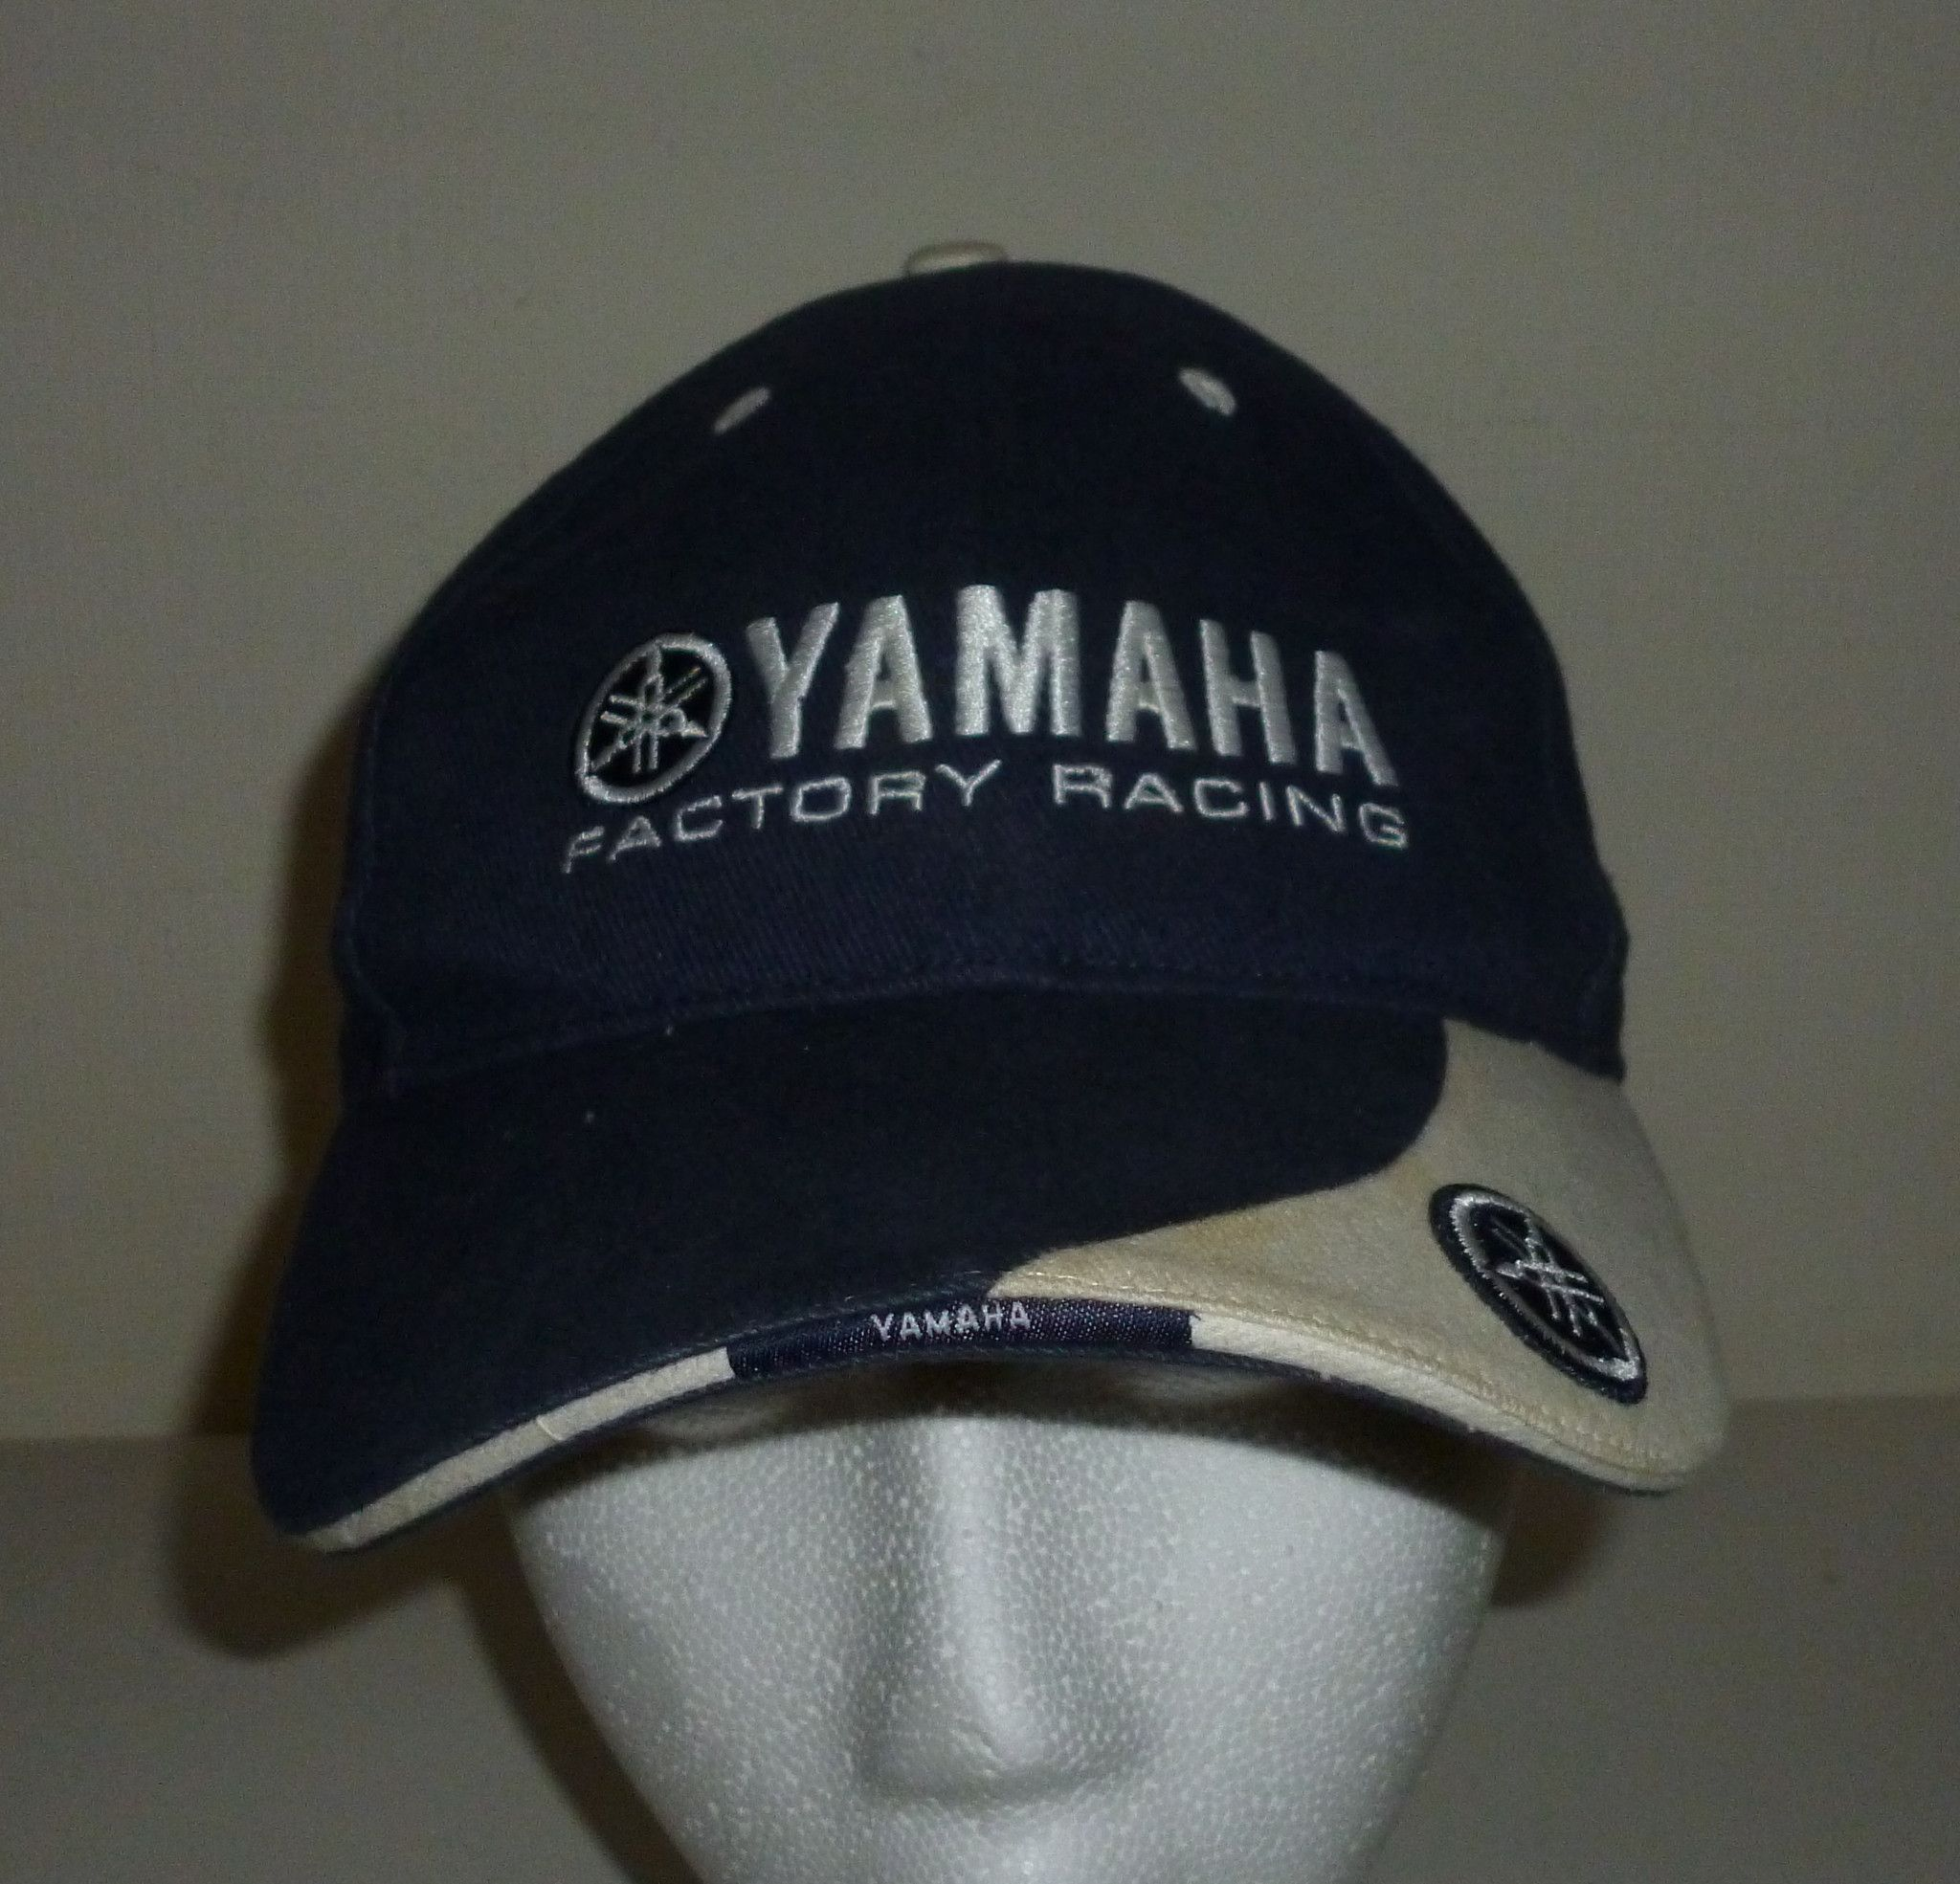 Yamaha Factory Racing Baseball Cap Hat  17b93befe8b